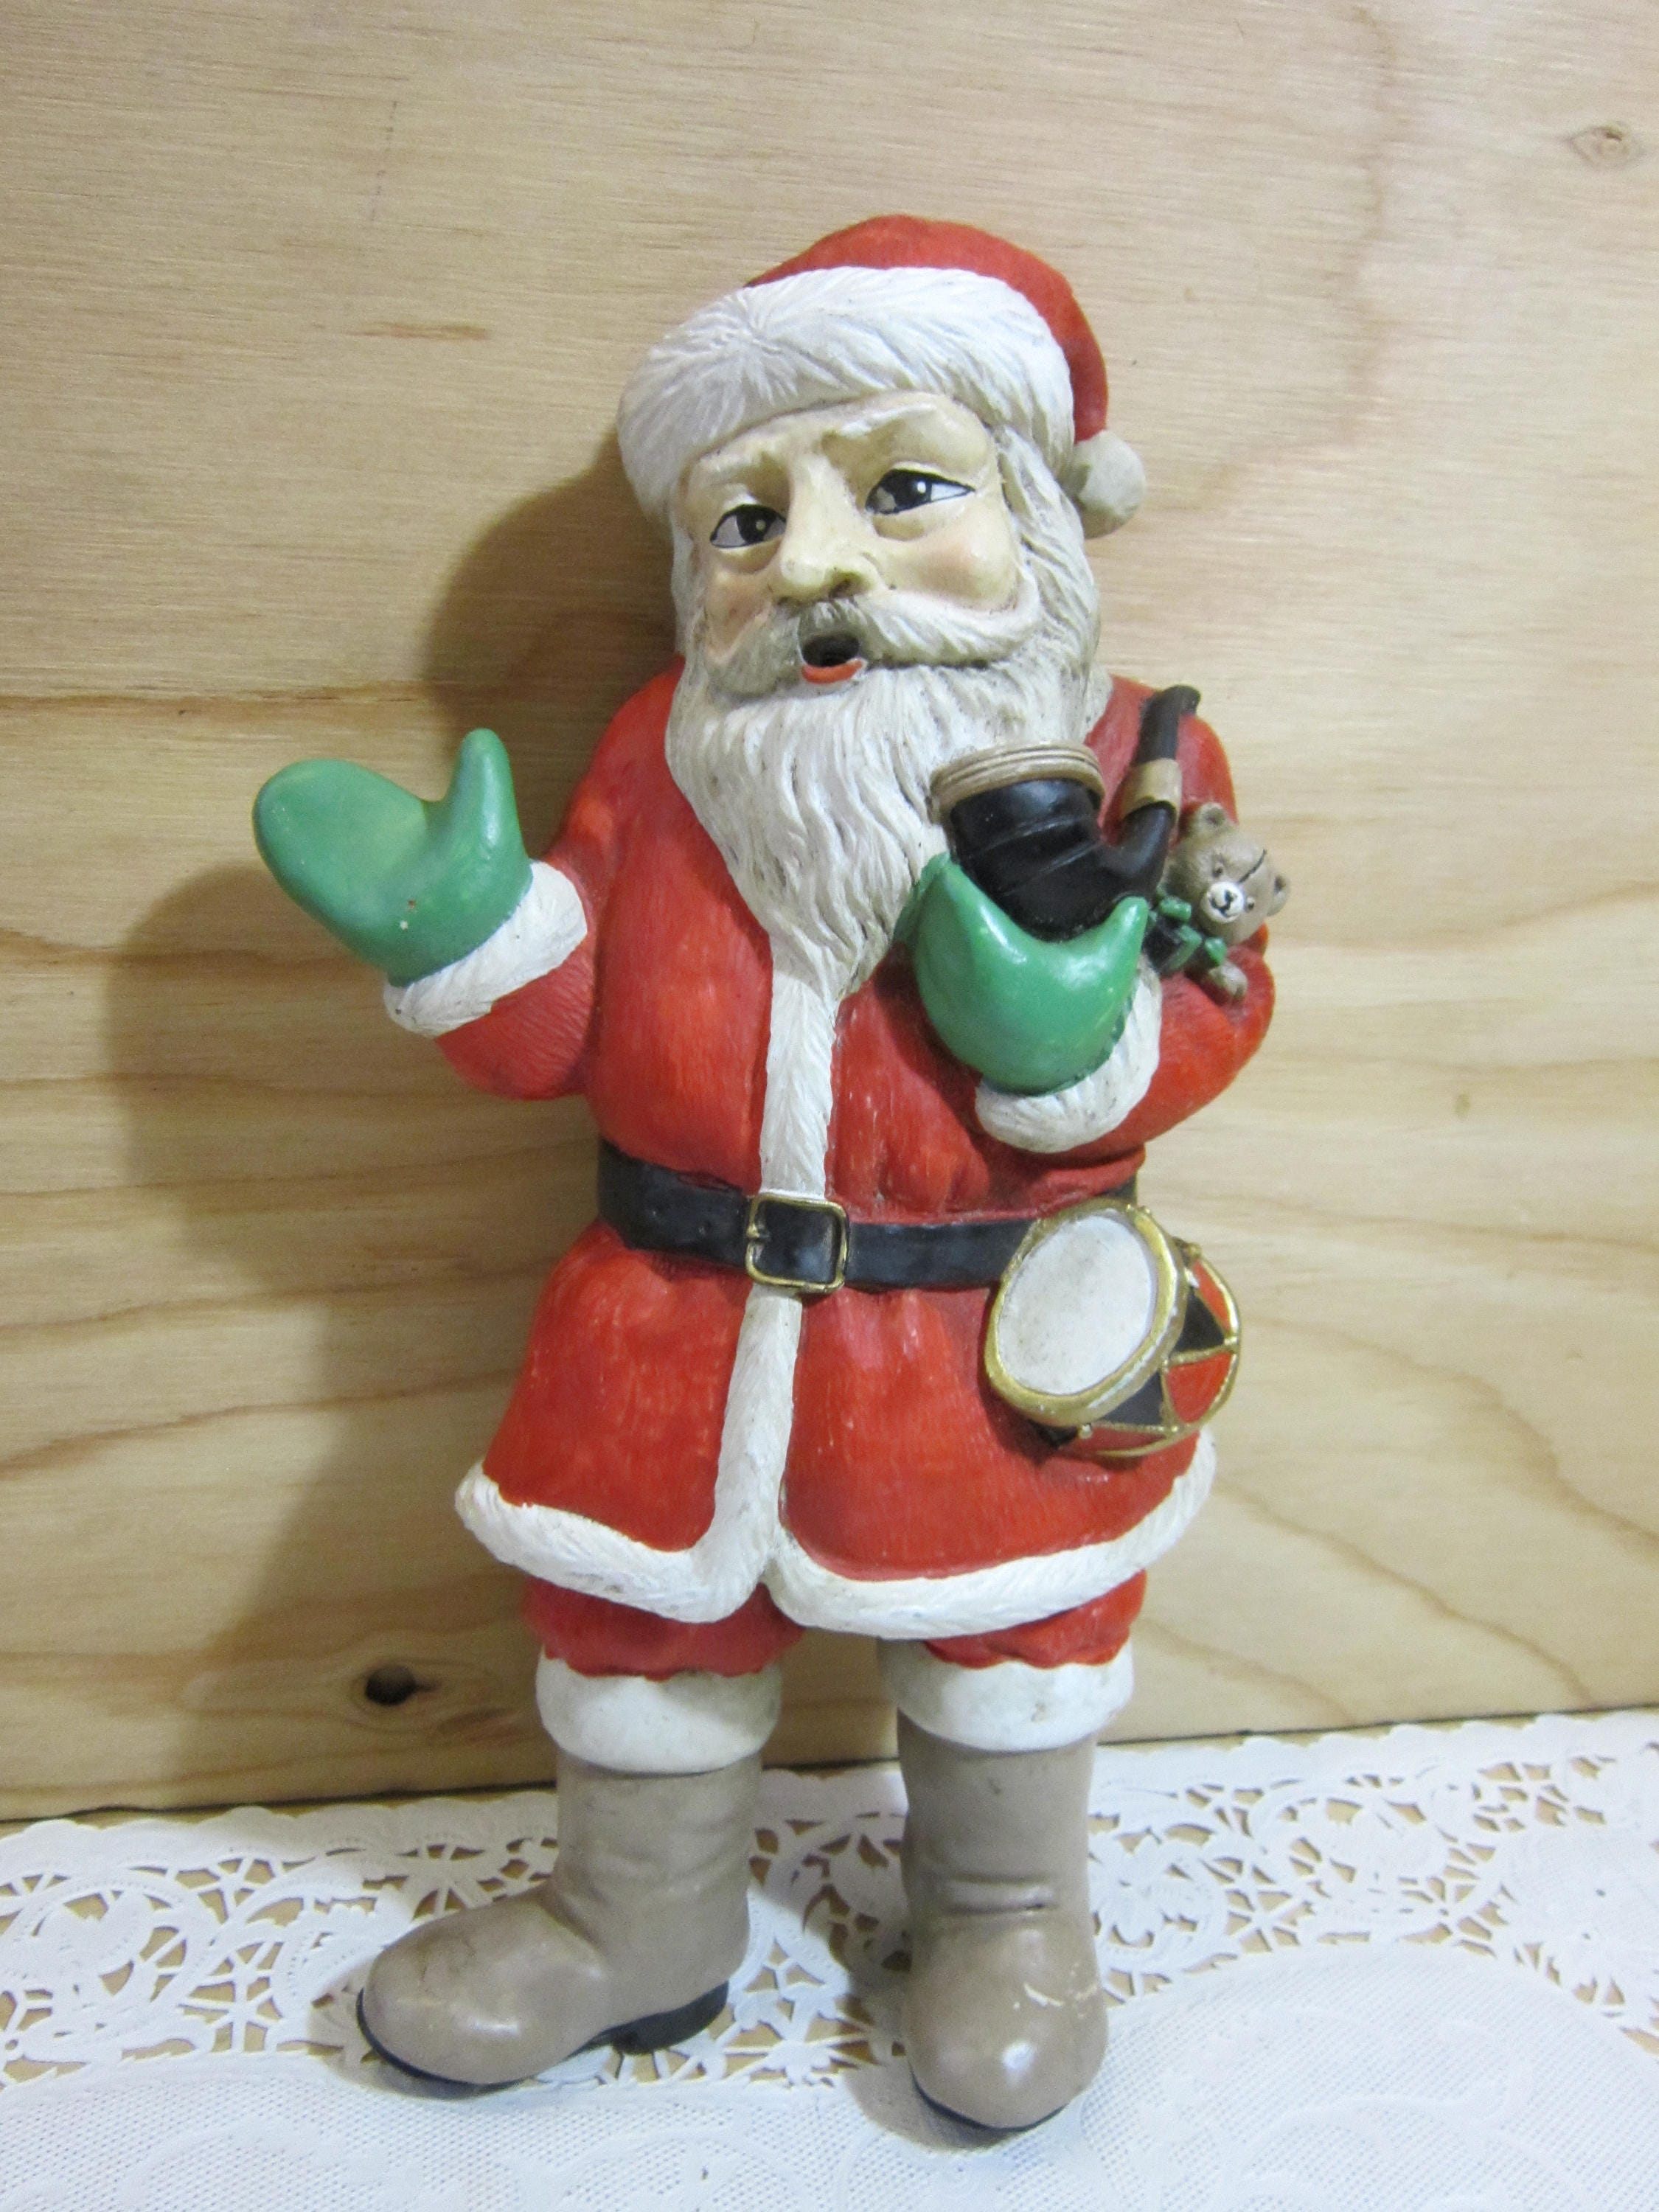 lithuania decor moments precious holiday decorative reviews figurine santas pdx wayfair santa